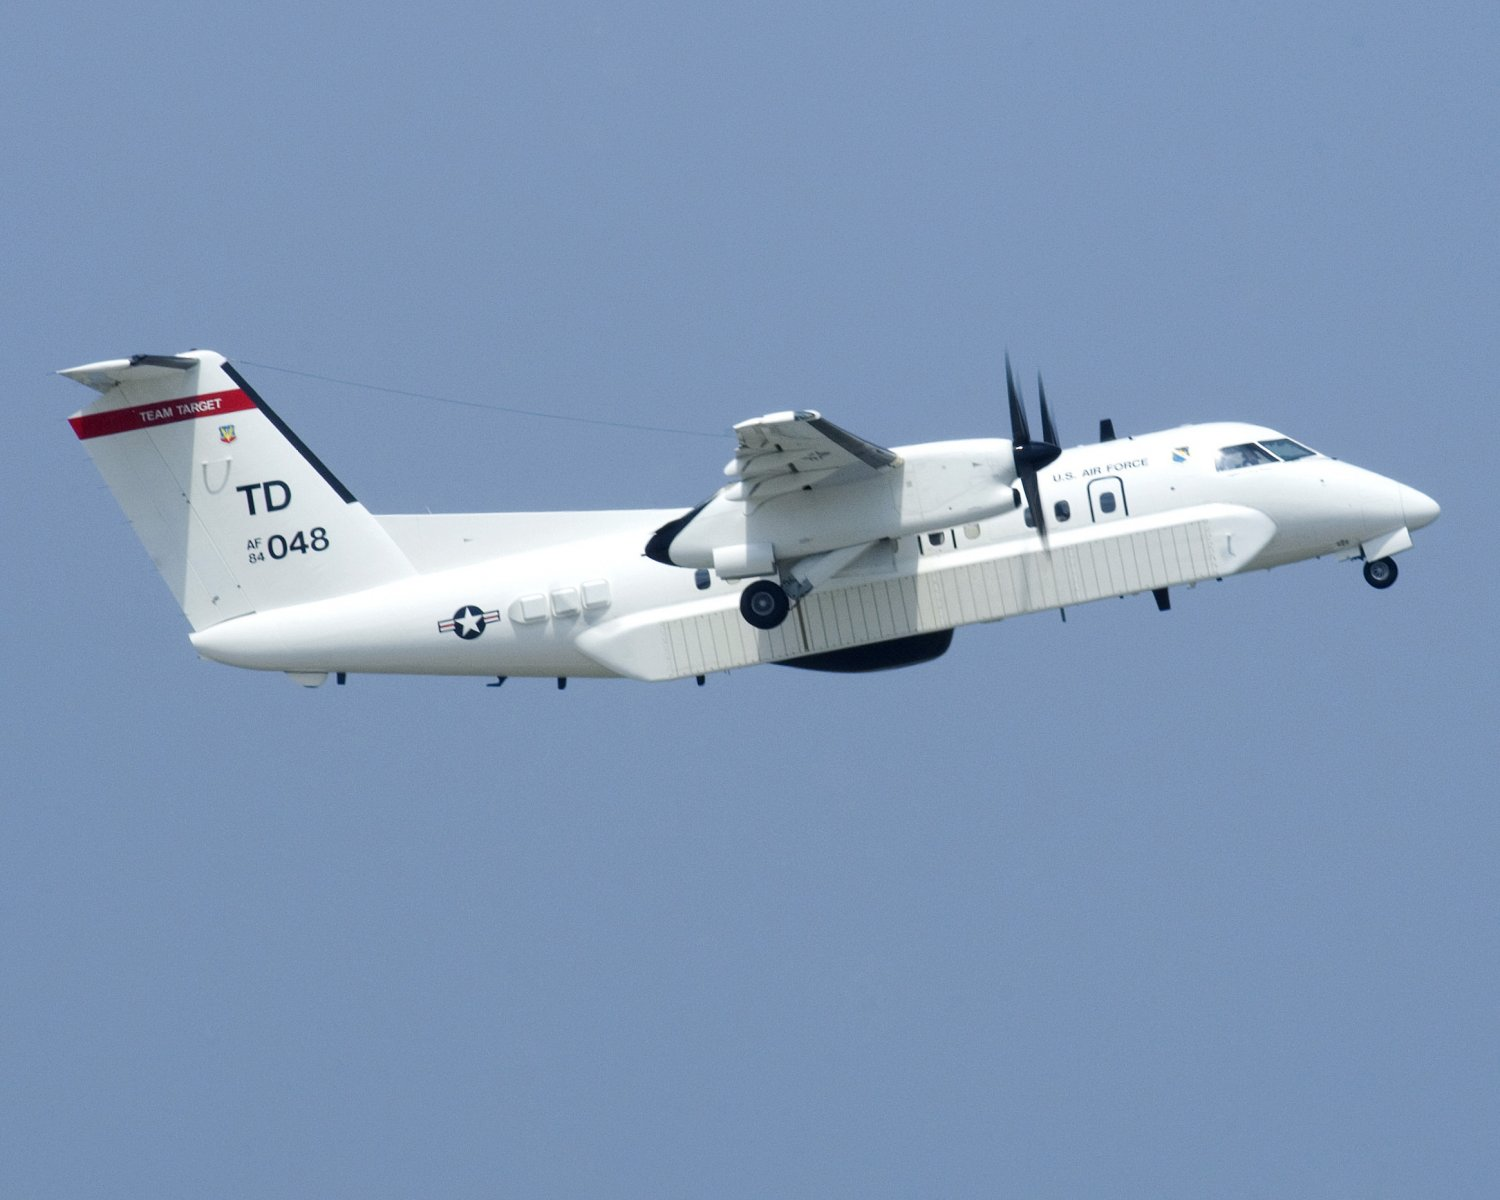 E-9A WIDGET AIRCRAFT TAKES OFF FROM TYNDALL AIR FORCE BASE - 8X10 PHOTO (EP-750)